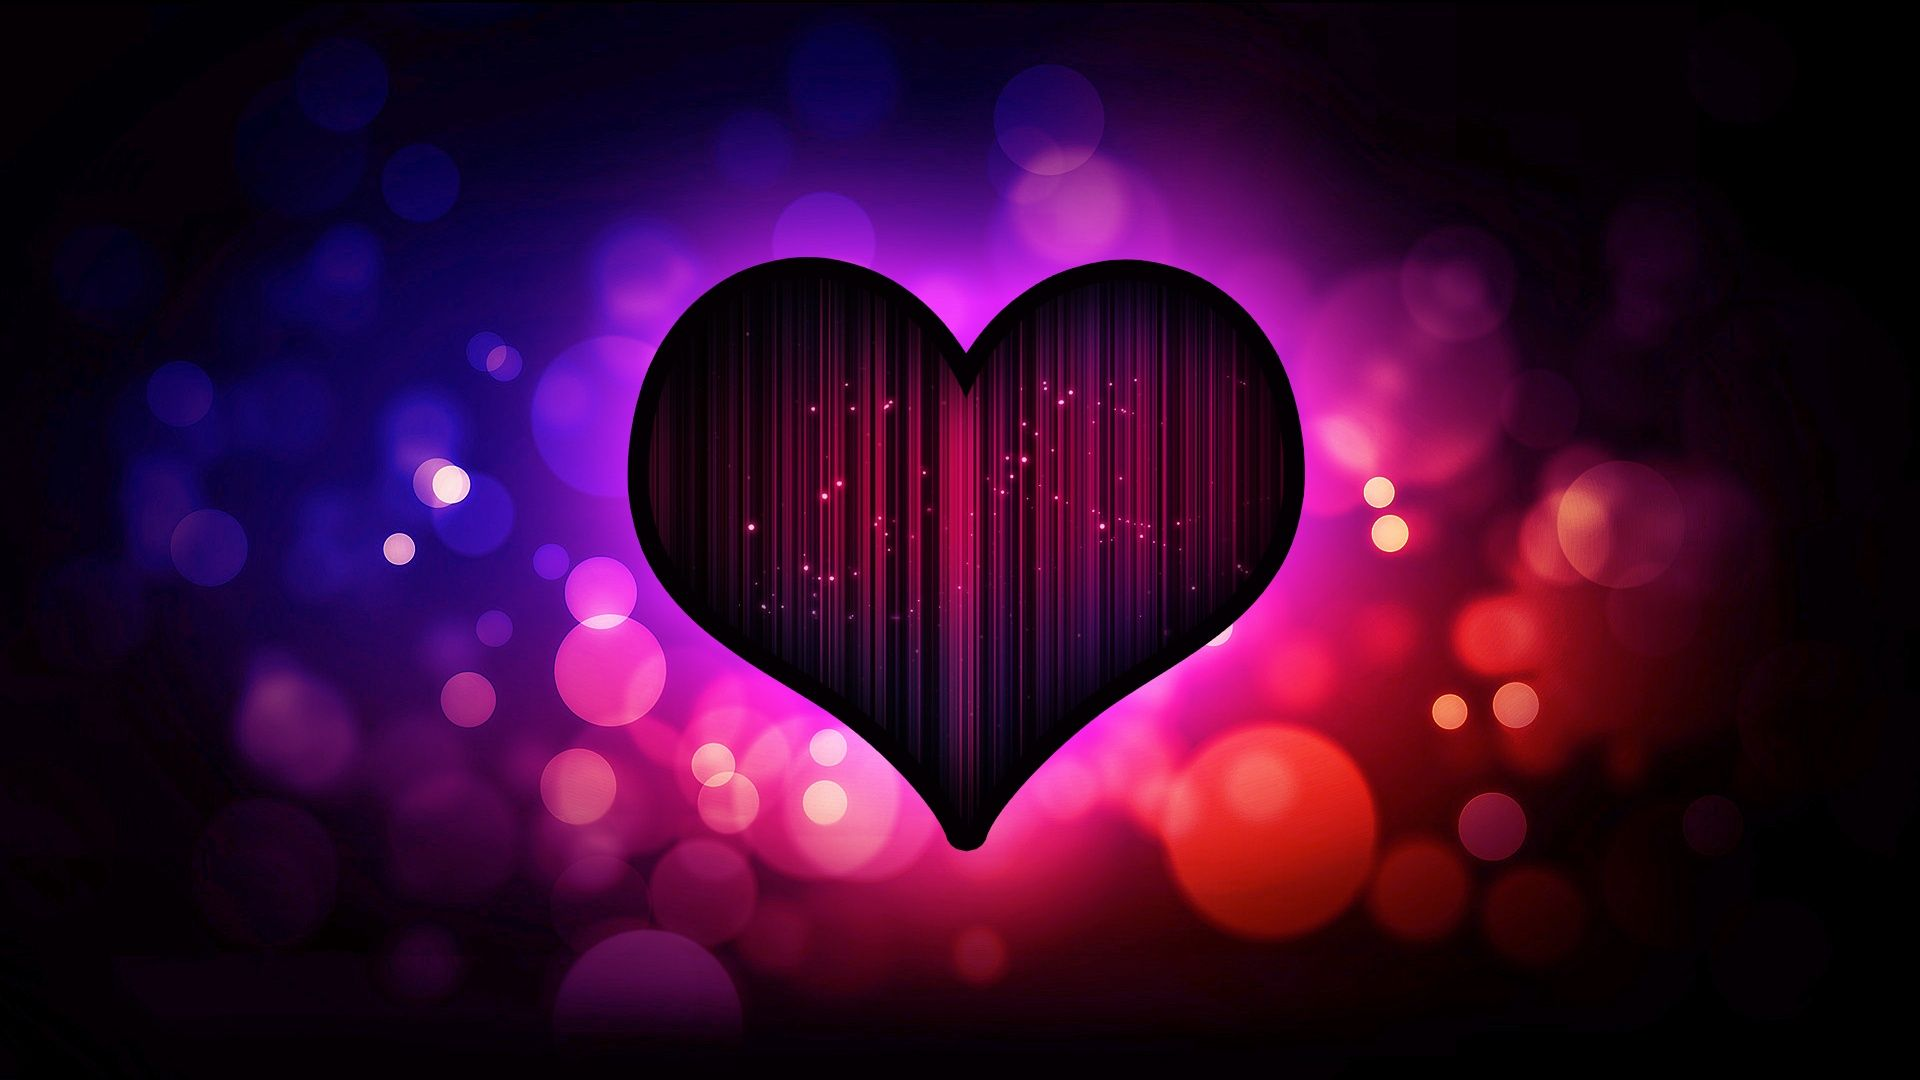 Hd Love Wallpapers Zip : Hd Wallpaper Of Love Heart